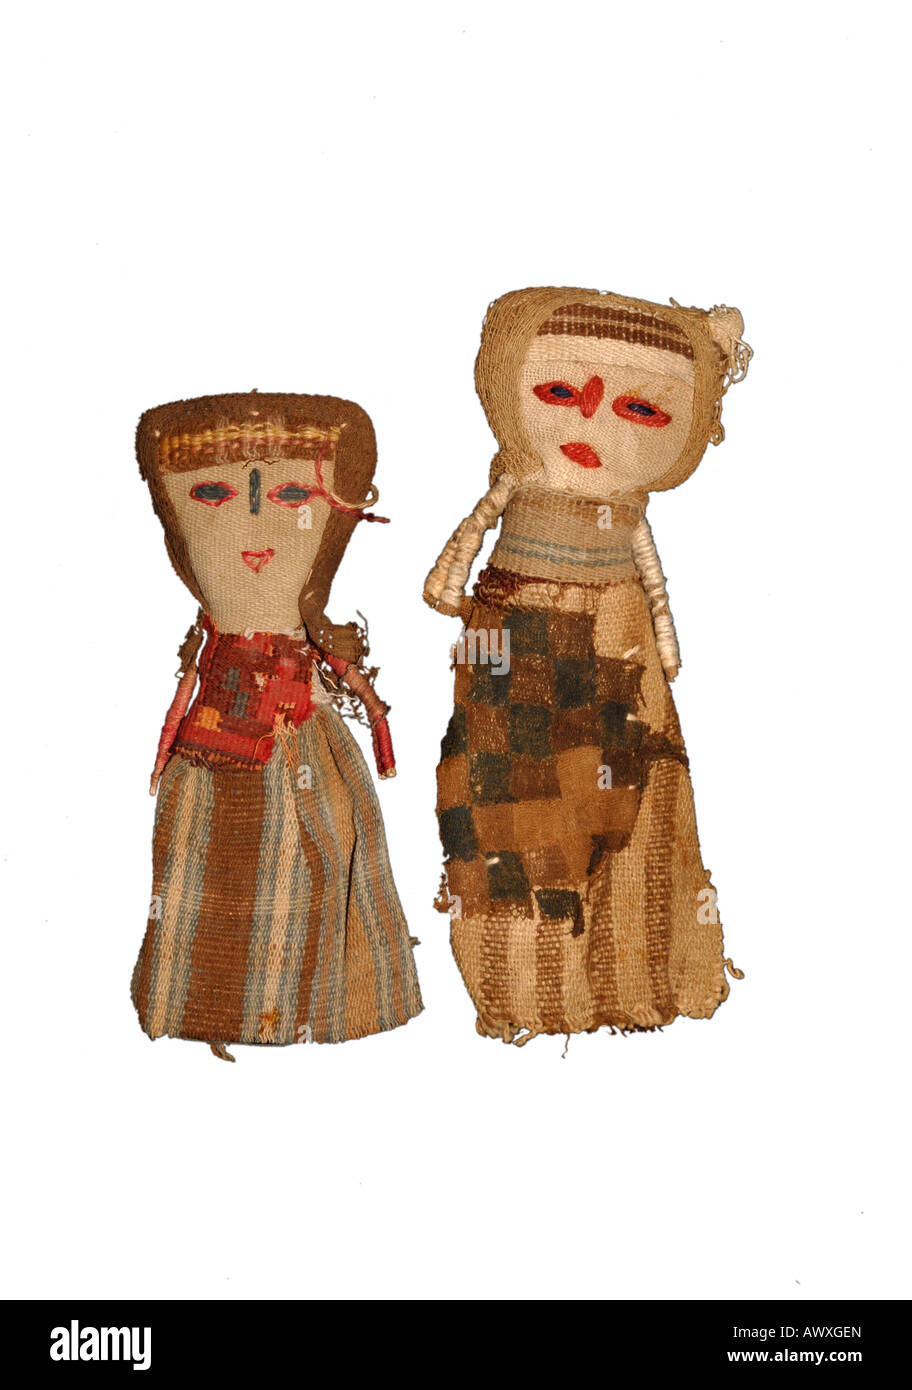 Precolombian fabric used to make doll souvenirs from Peru - Stock Image